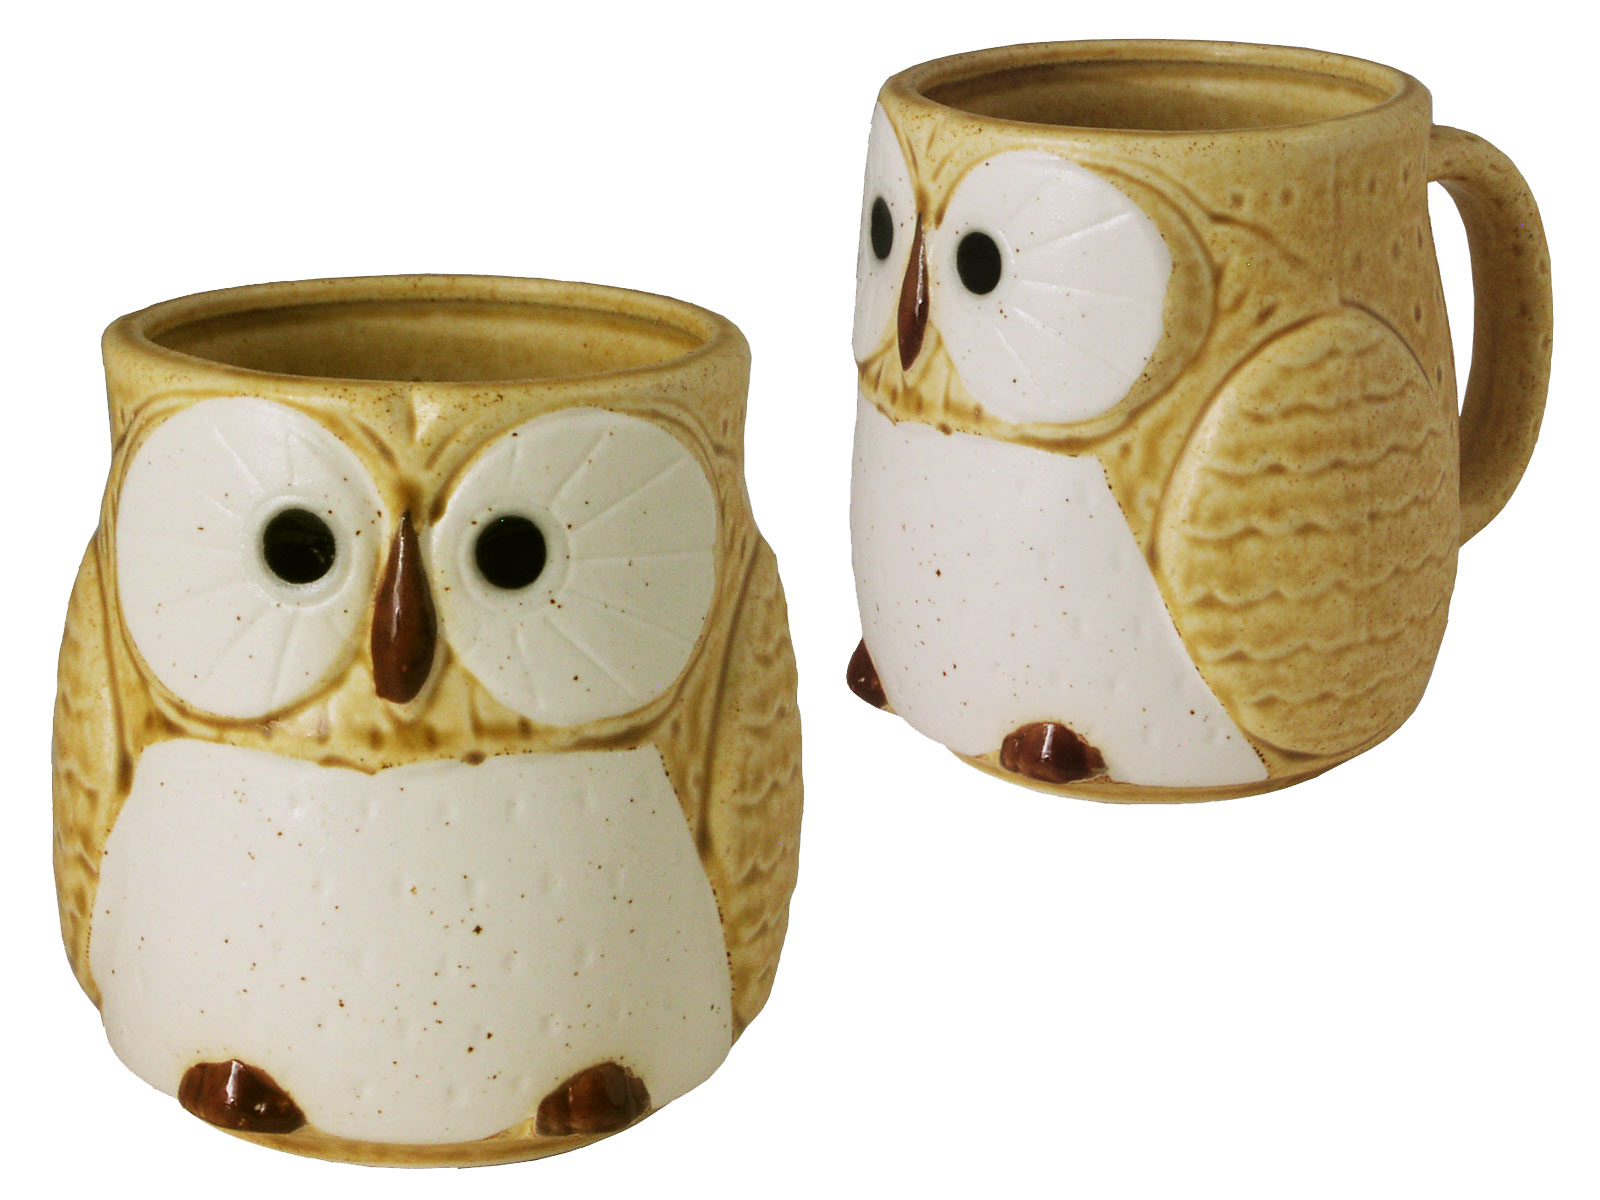 Owl Ceramic Mug Adorable Japanese Ceramic Mustard Yellow Owl Tea Mug